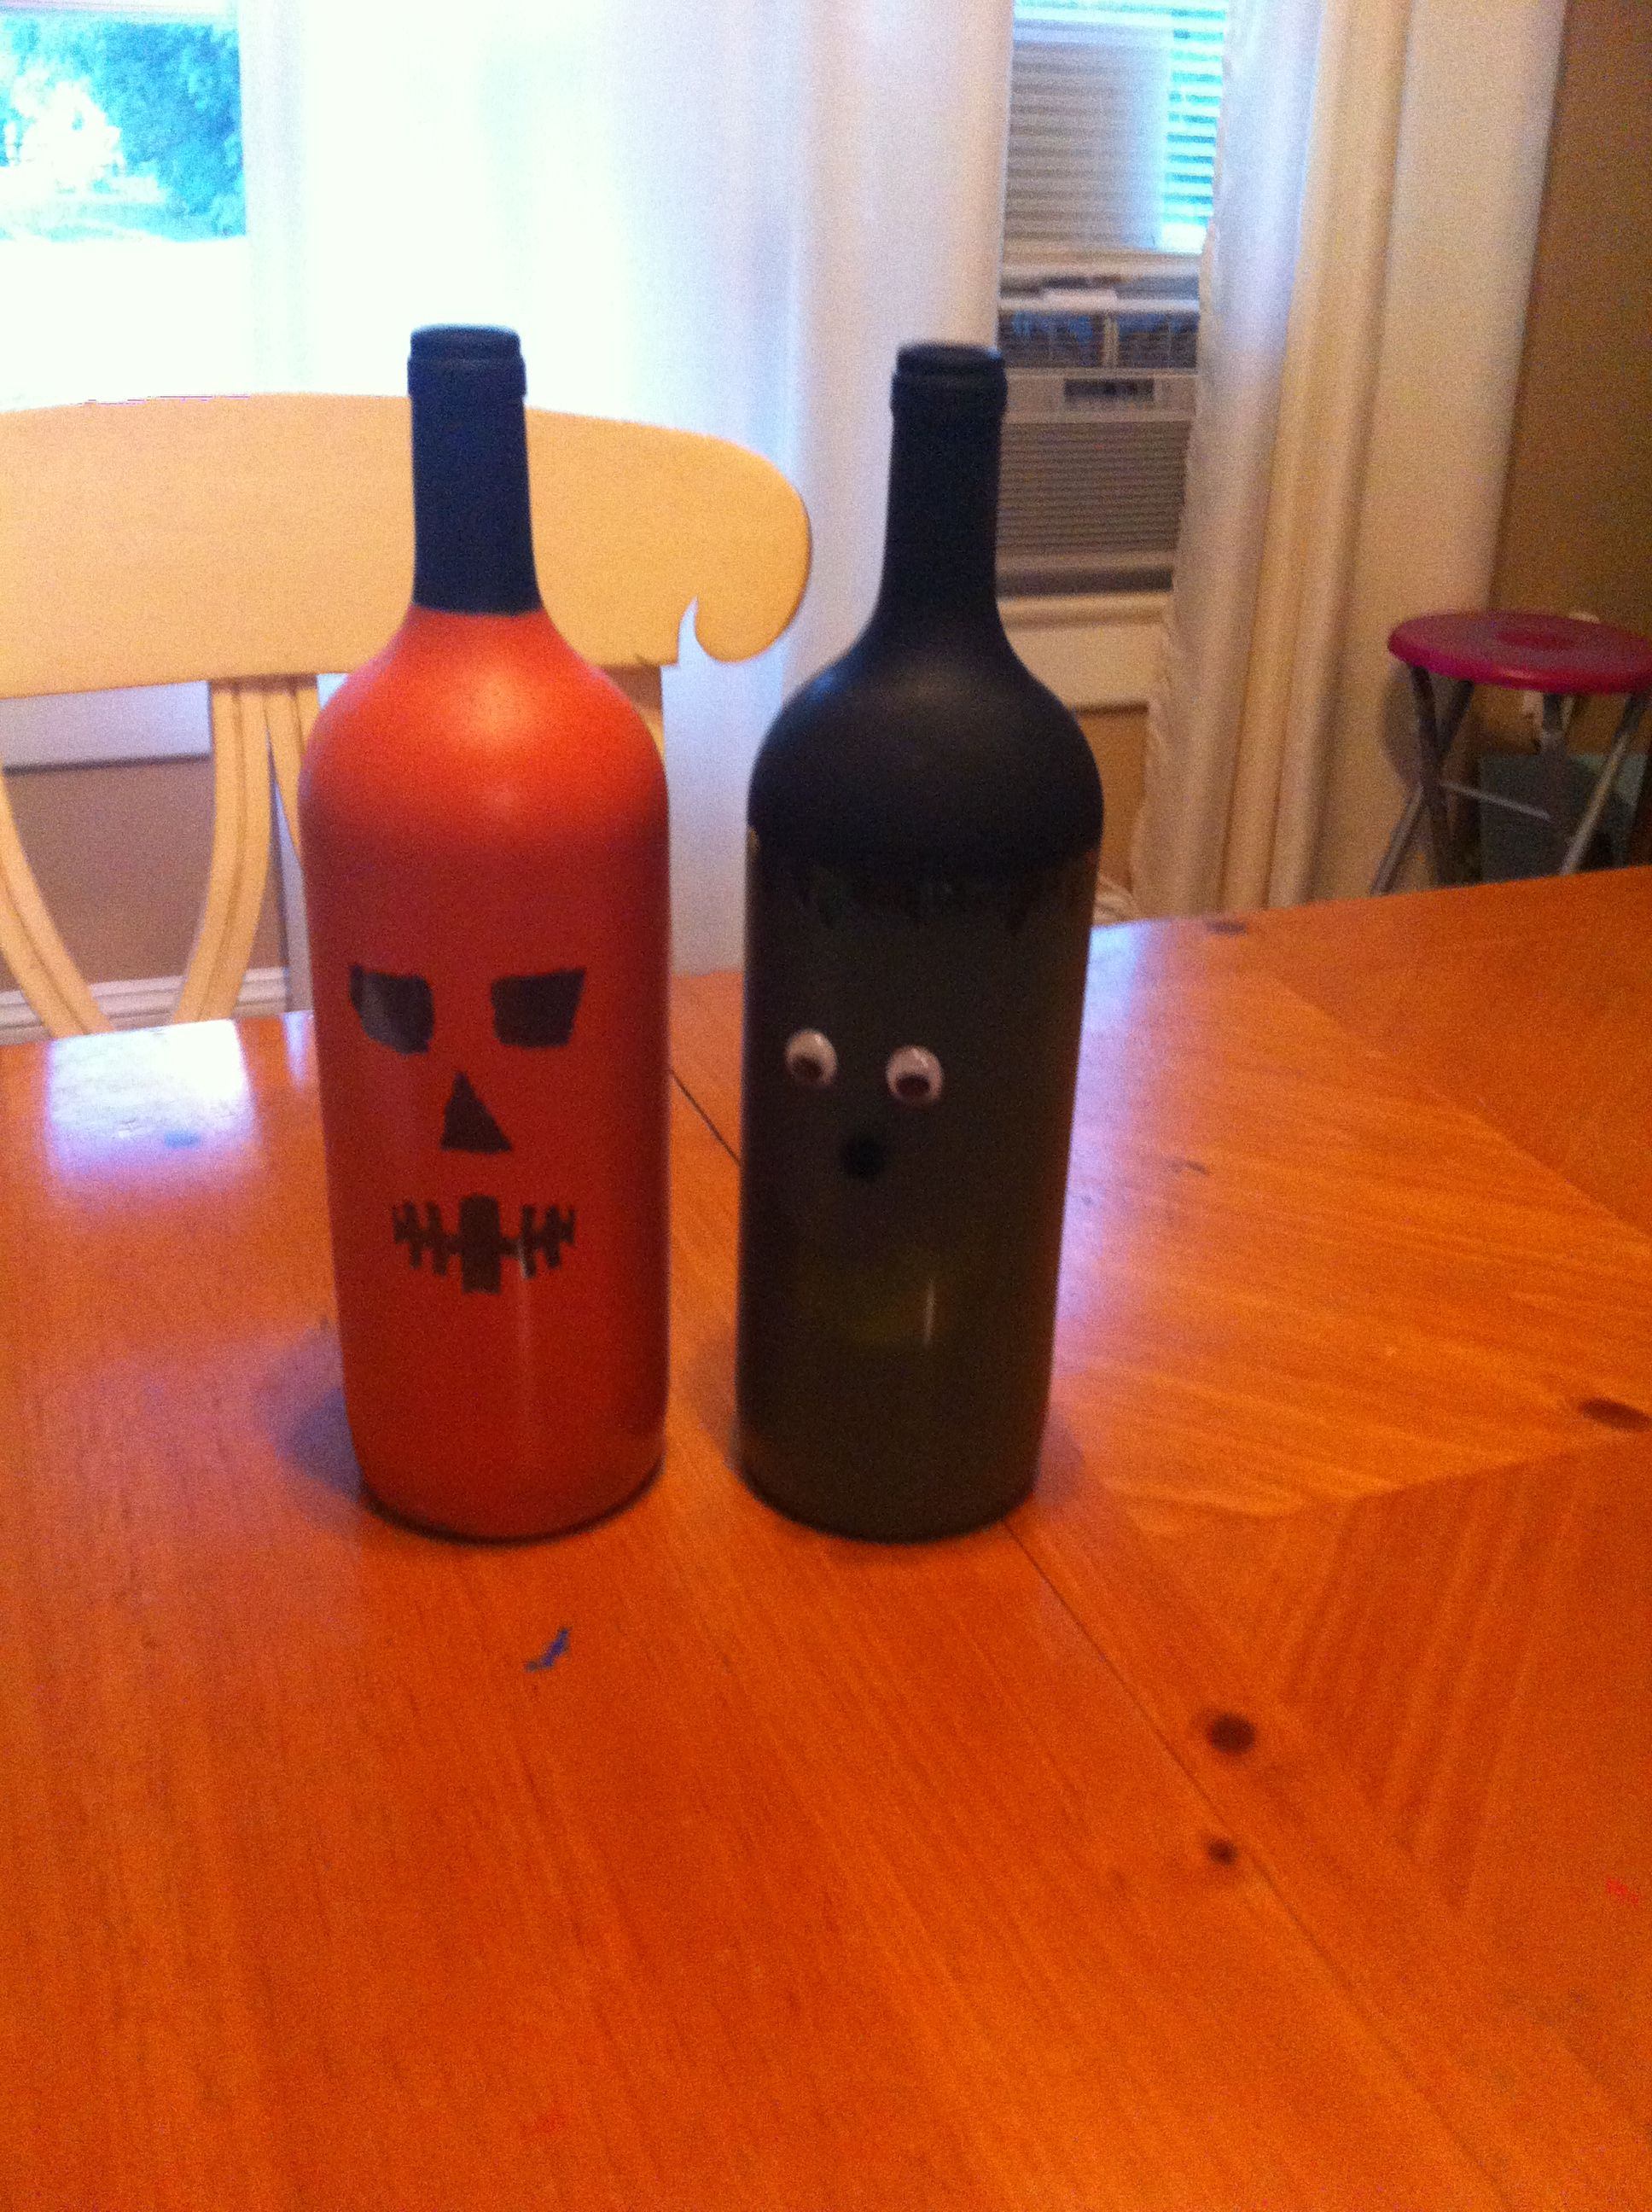 Diy Halloween Wine Bottle Craft Not My Best Work But I M Learning As I Go Might Do Som Halloween Wine Bottle Crafts Halloween Wine Bottles Wine Bottle Crafts